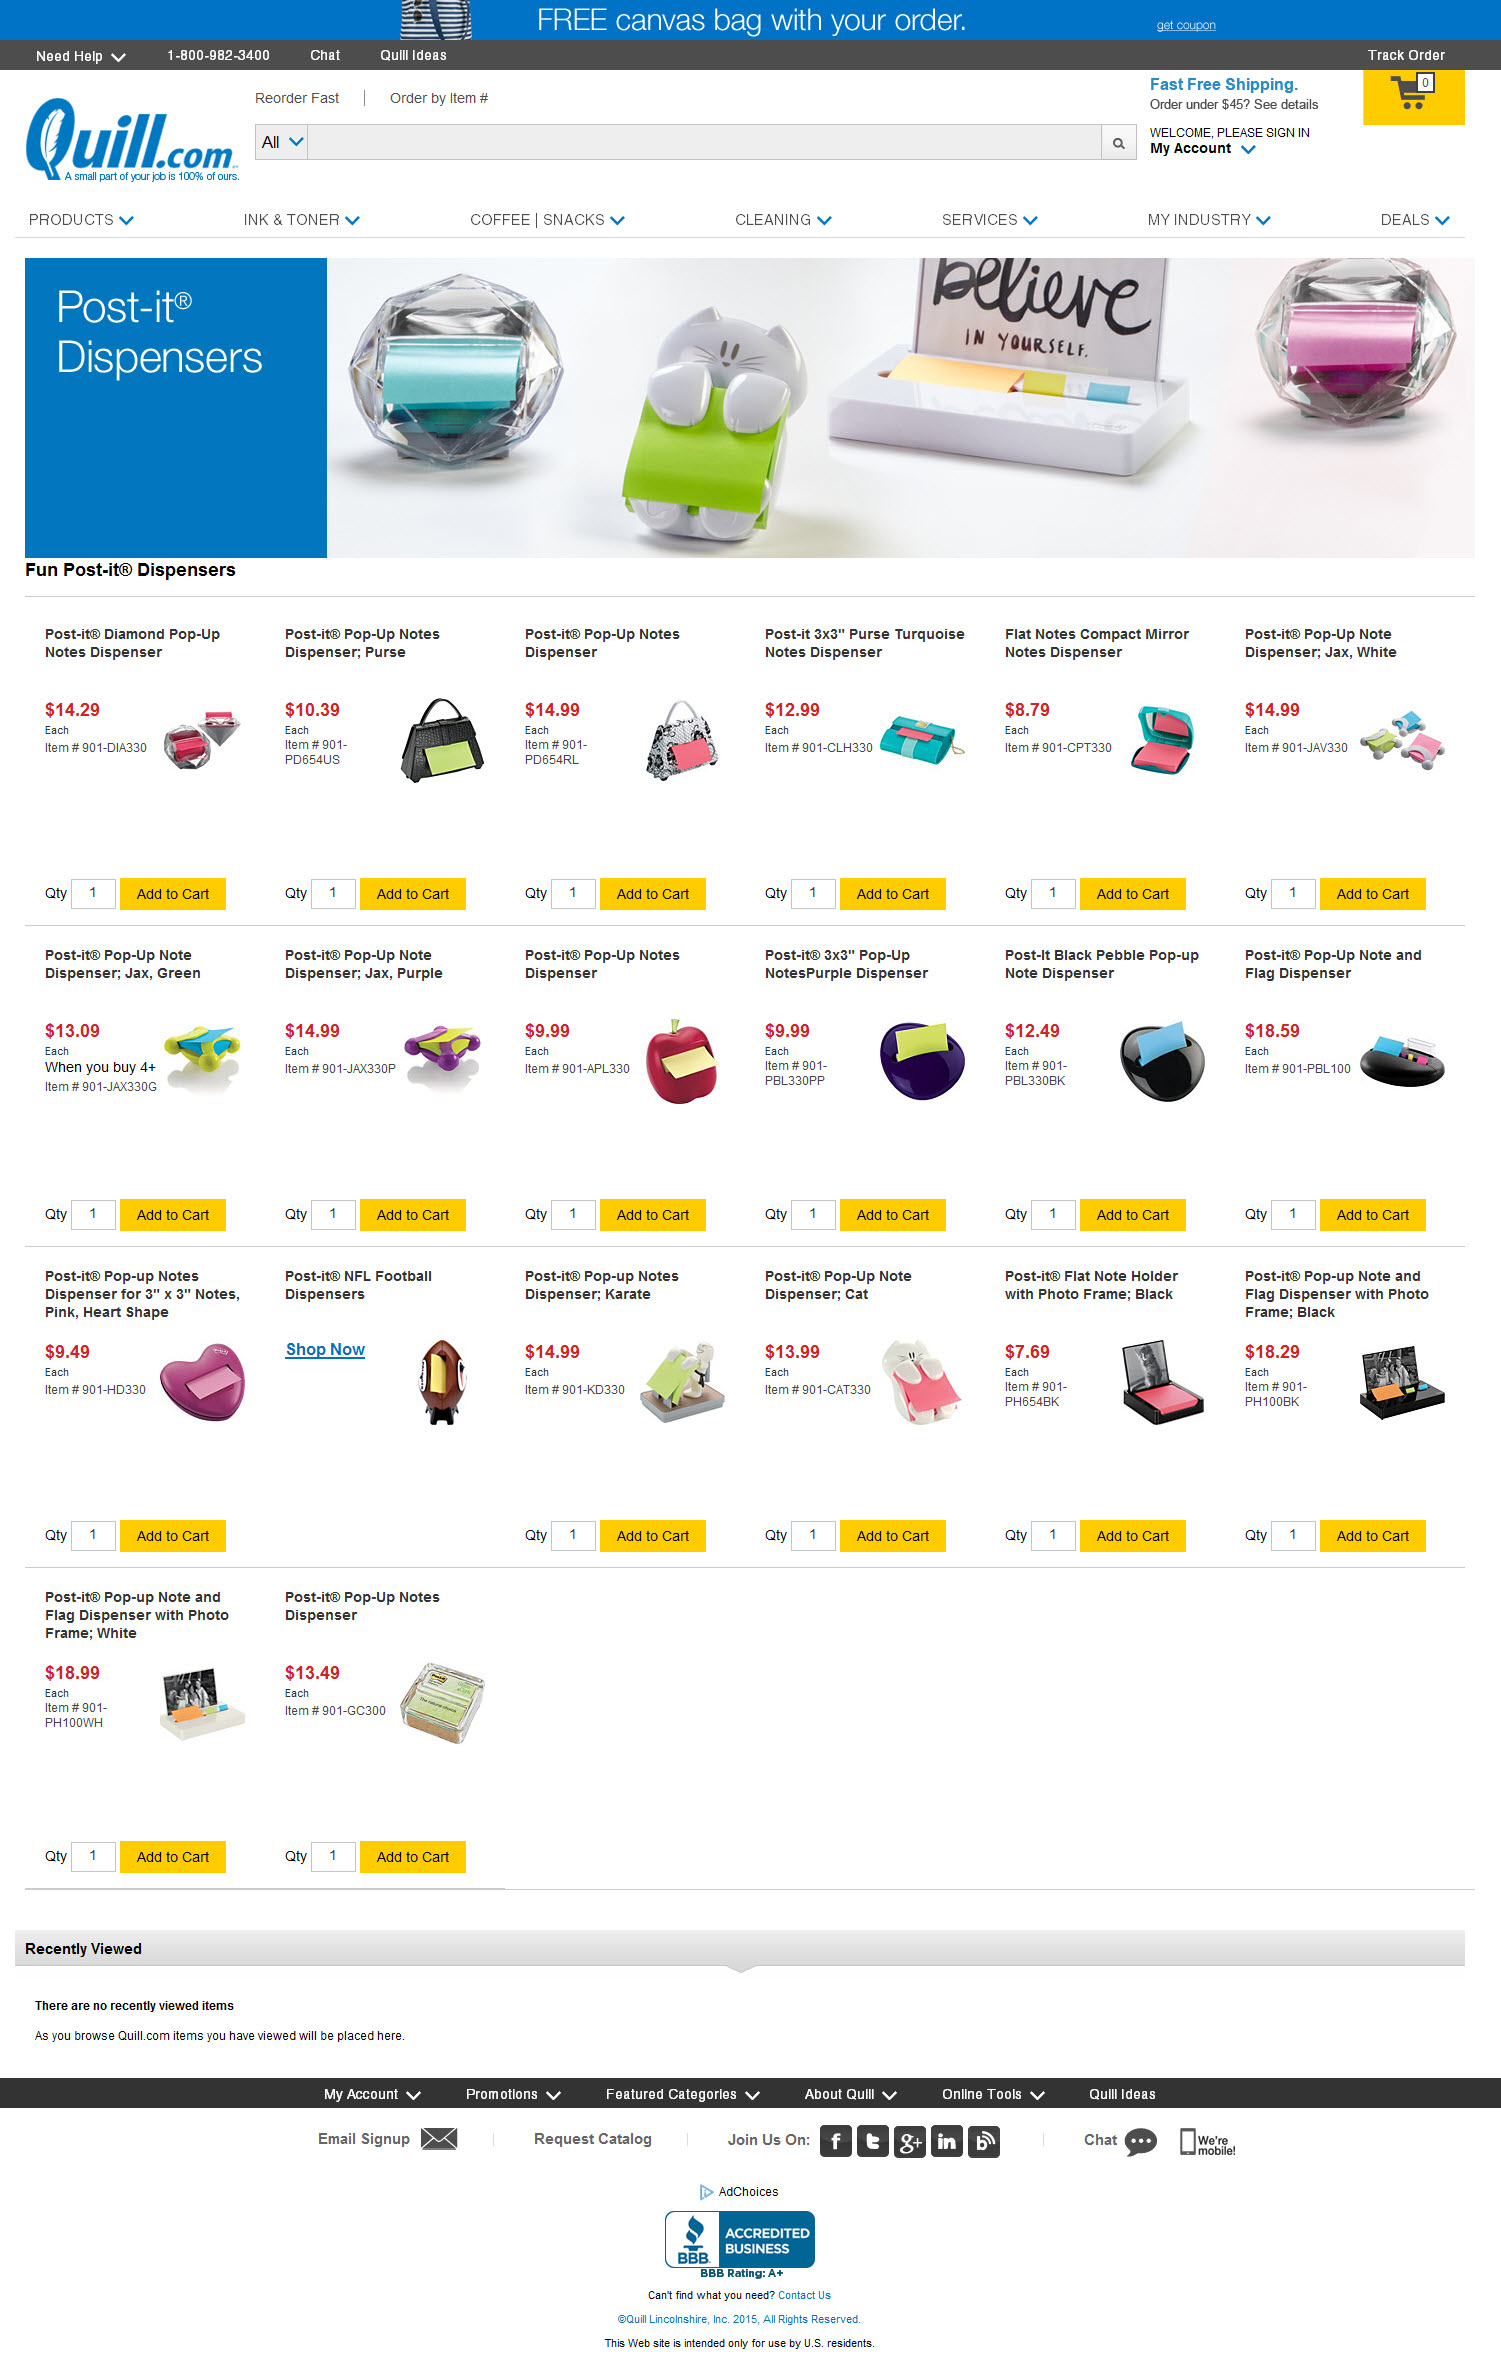 Post-it® Dispensers product page